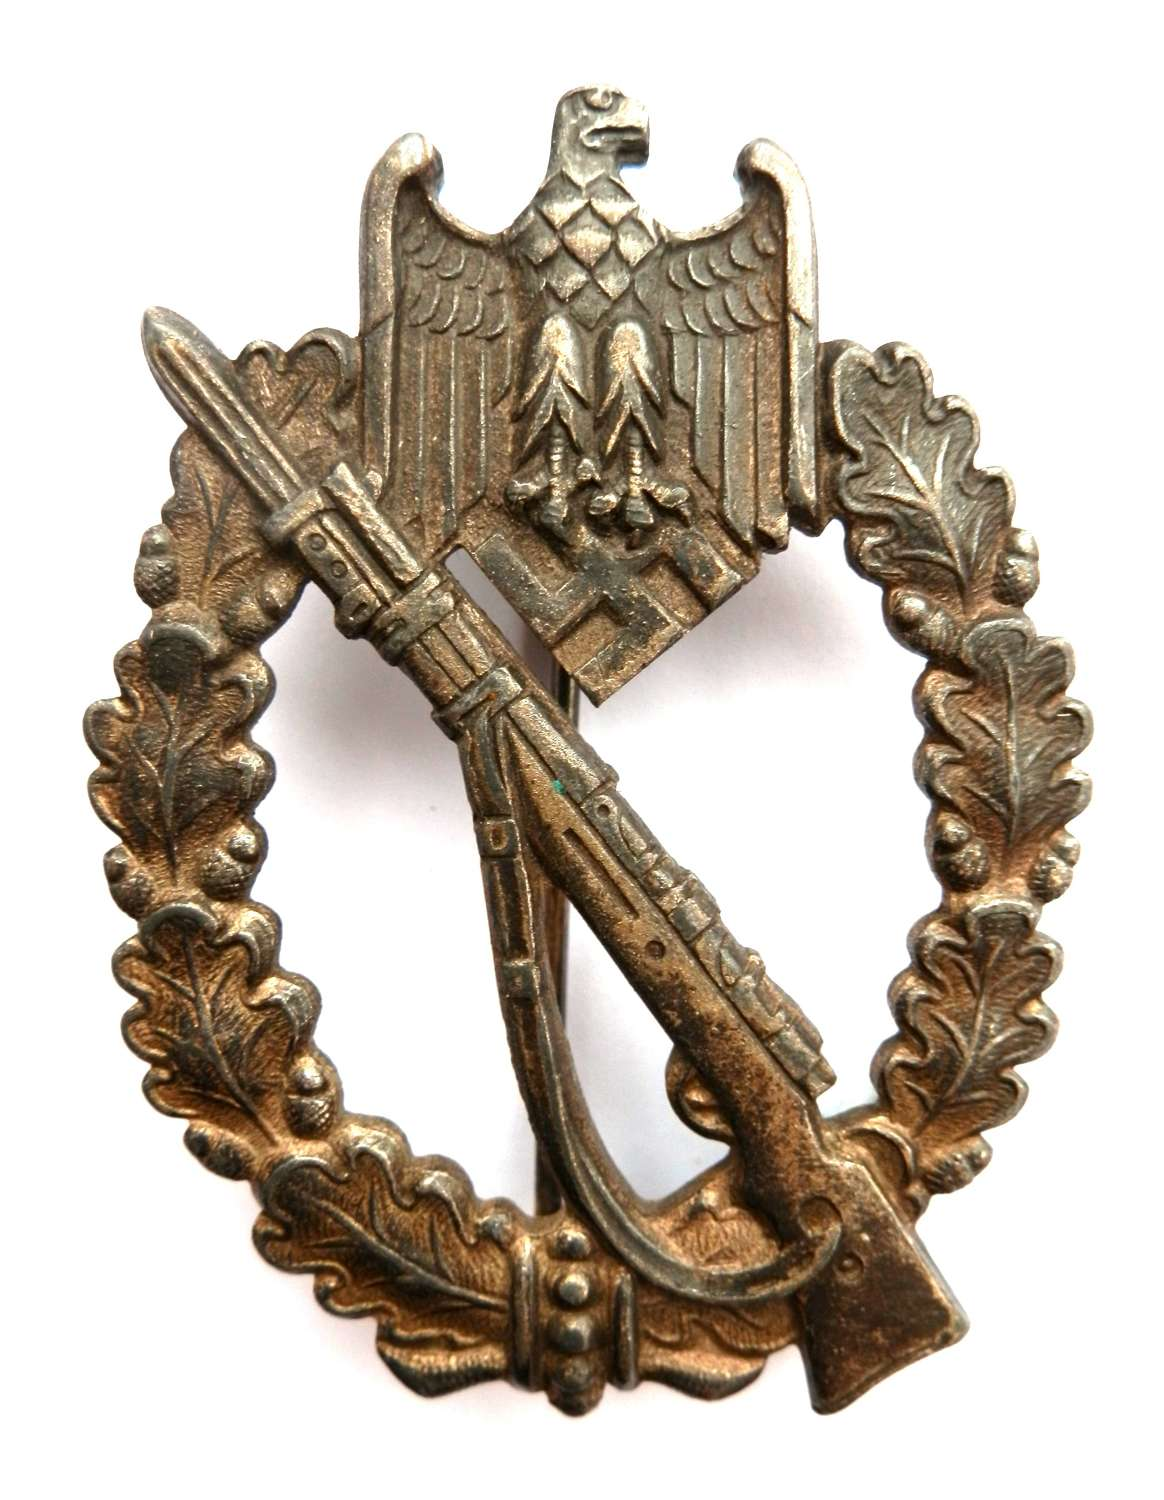 German Infantry Assault Badge. By 'C.W', Carl Wild.